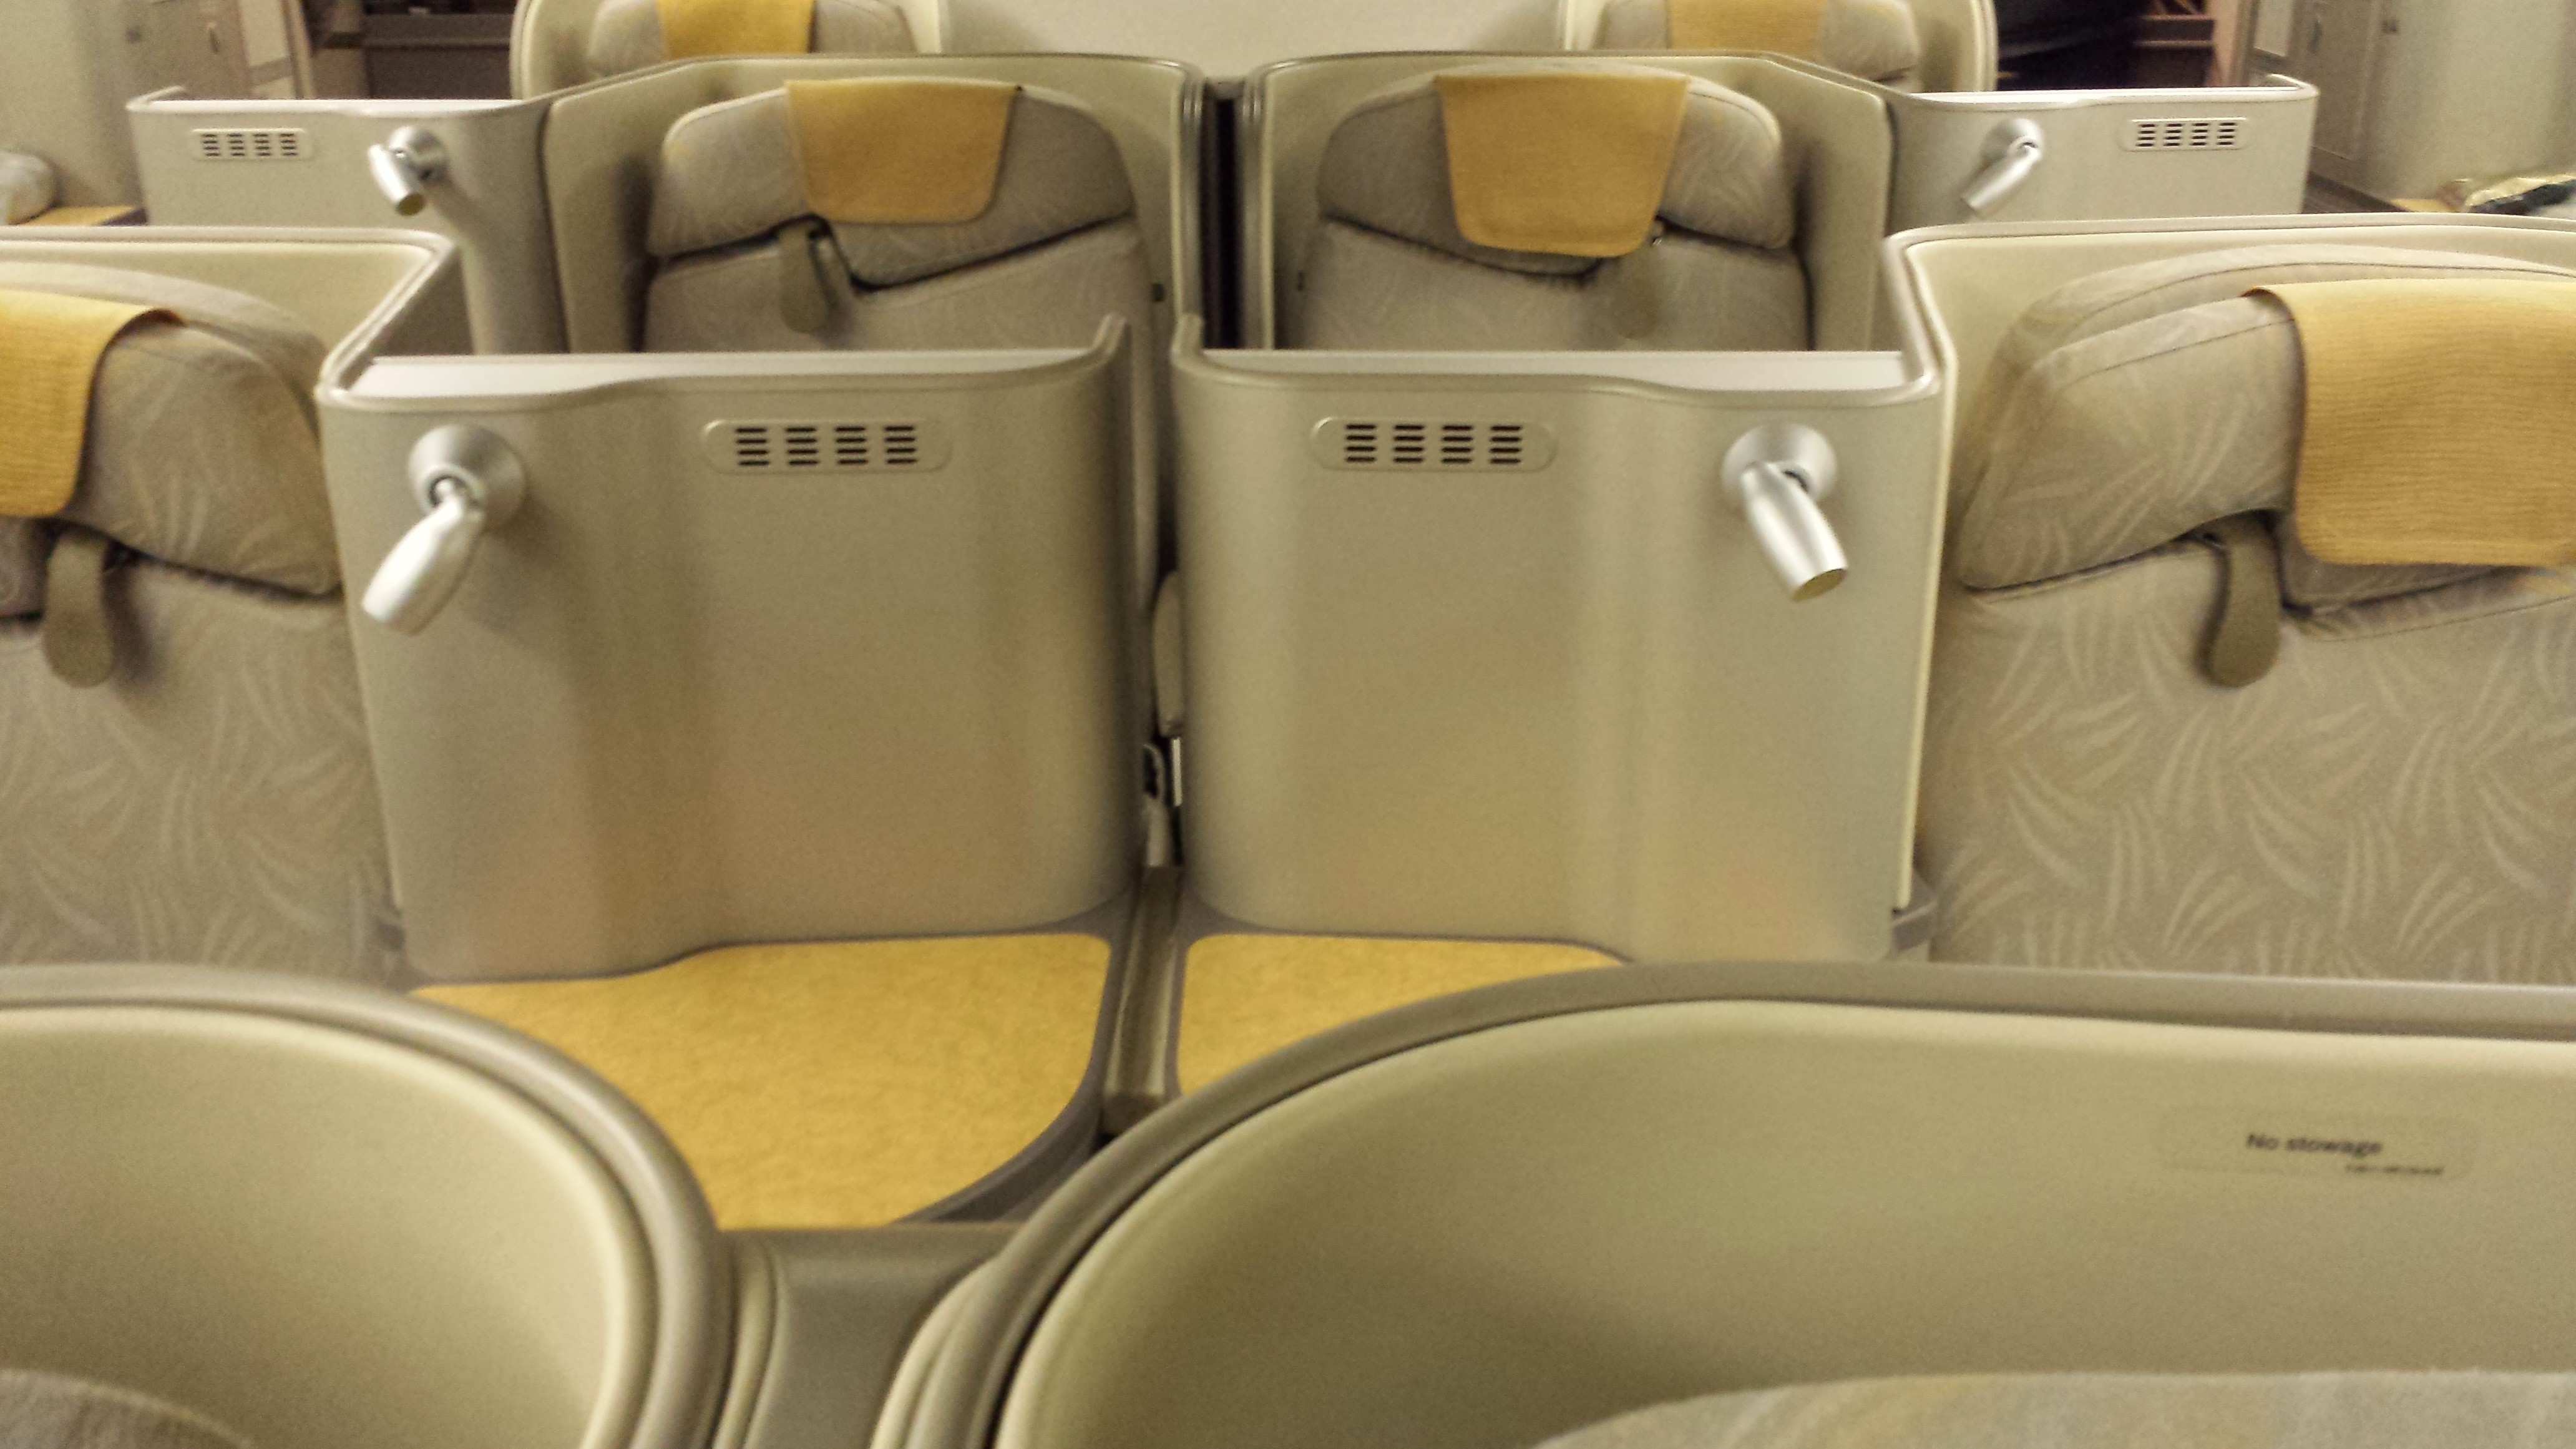 Staggered center seating.